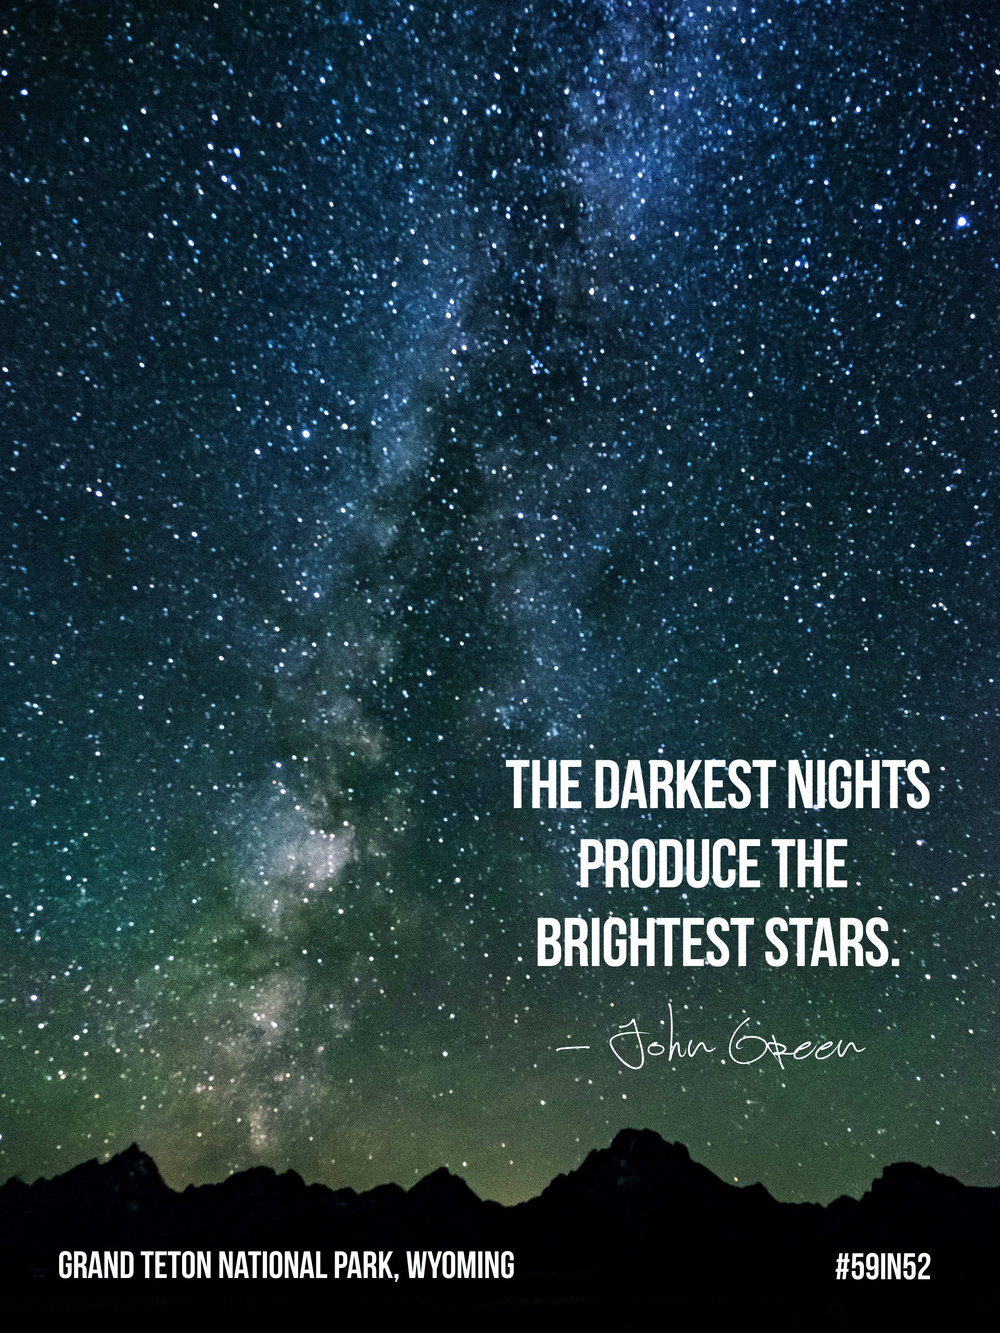 """The darkest nights produce the brightest stars."" - John Green"